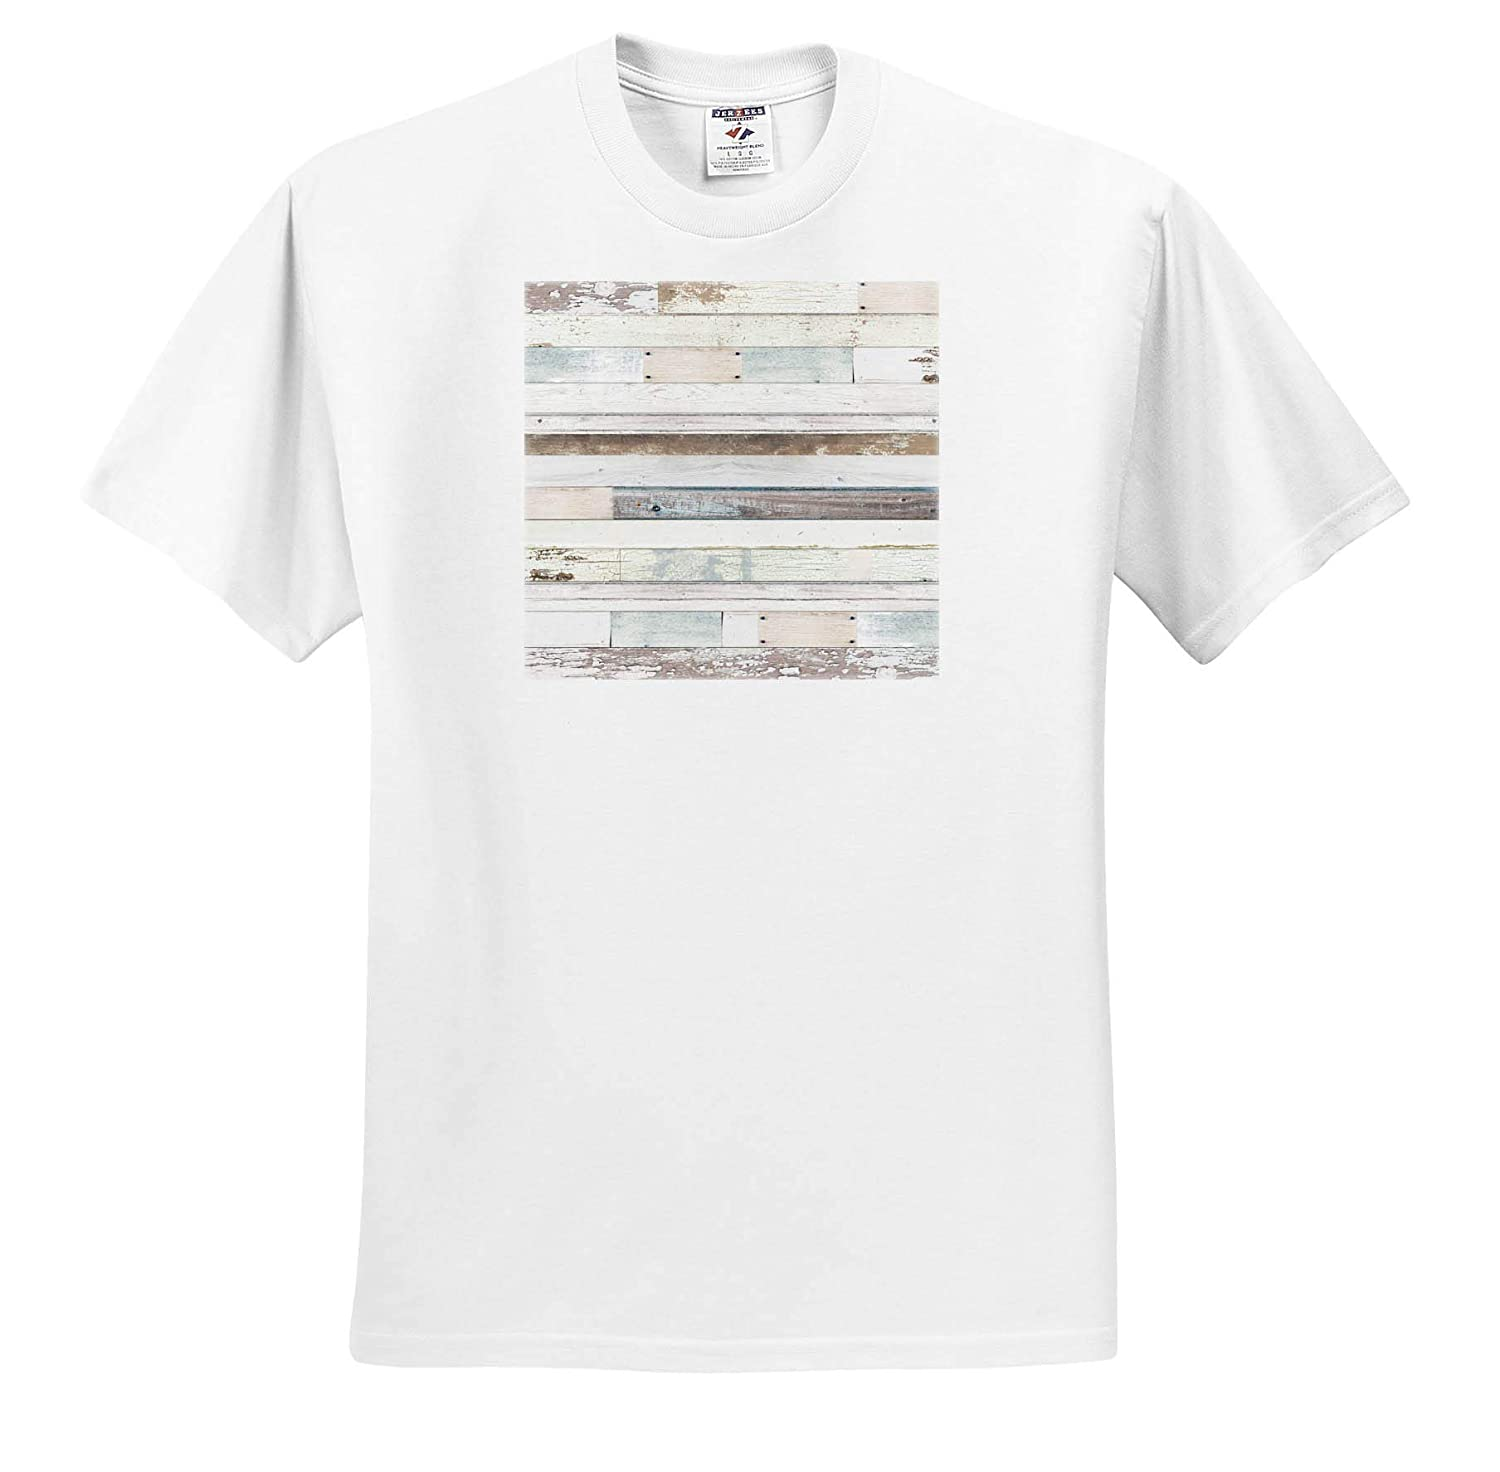 White Textures and Brown Image of Distressed Wood ts/_309784 Adult T-Shirt XL 3dRose Anne Marie Baugh Light Blue